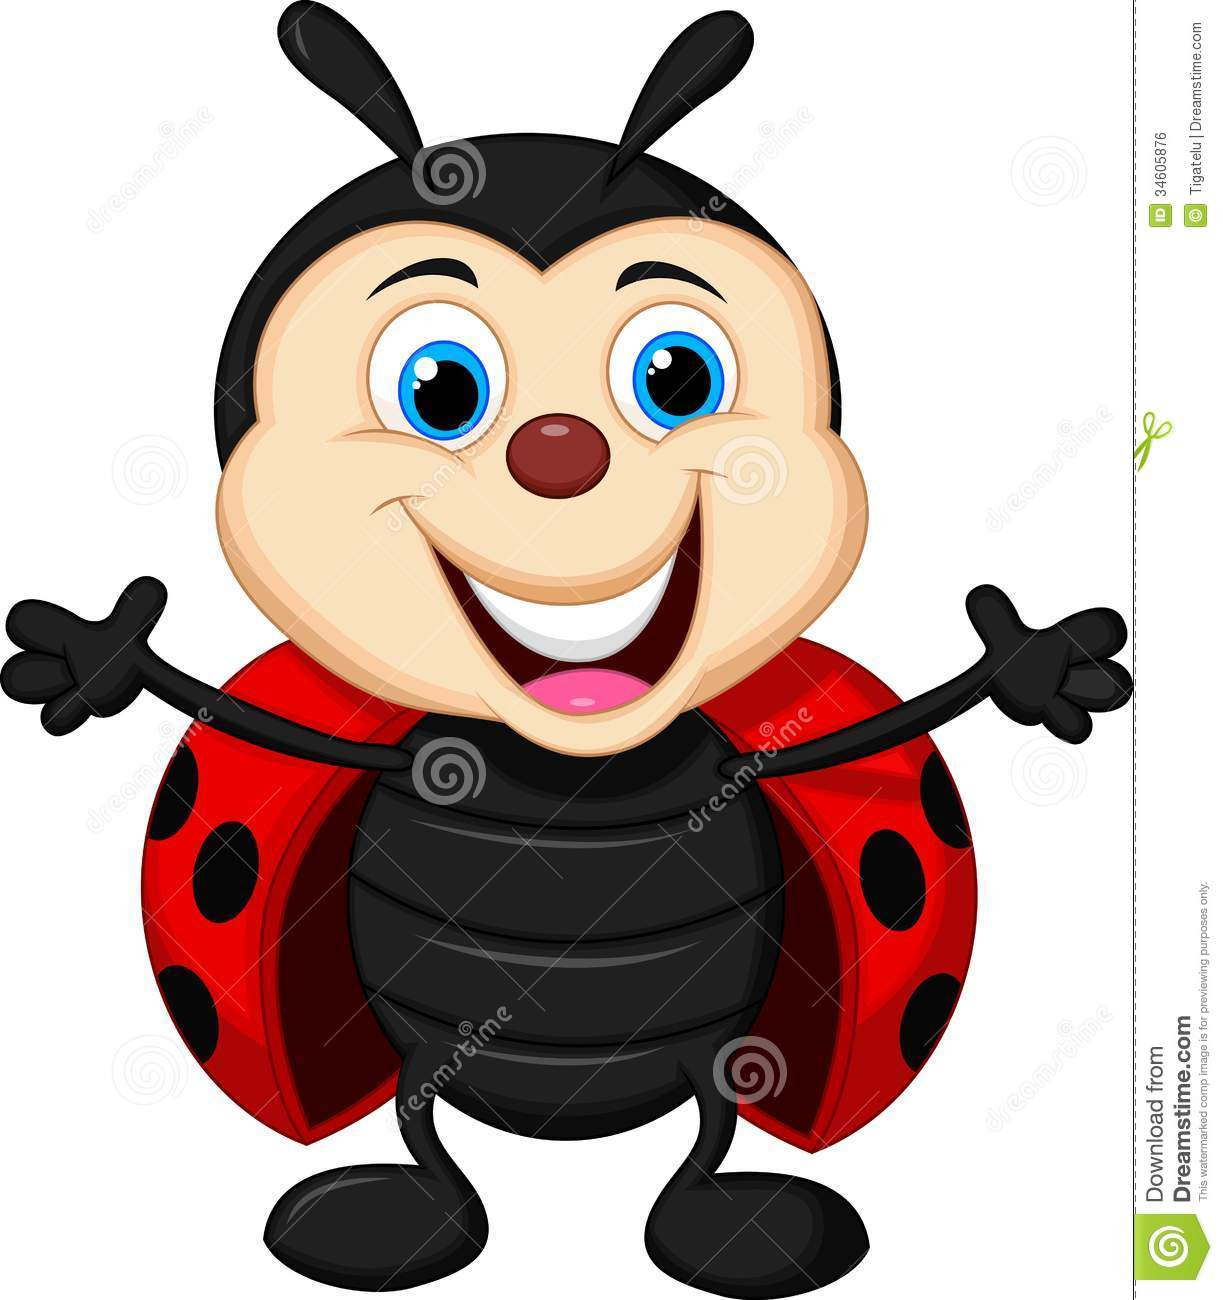 Royalty Free Stock Image  Happy Ladybug Cartoon